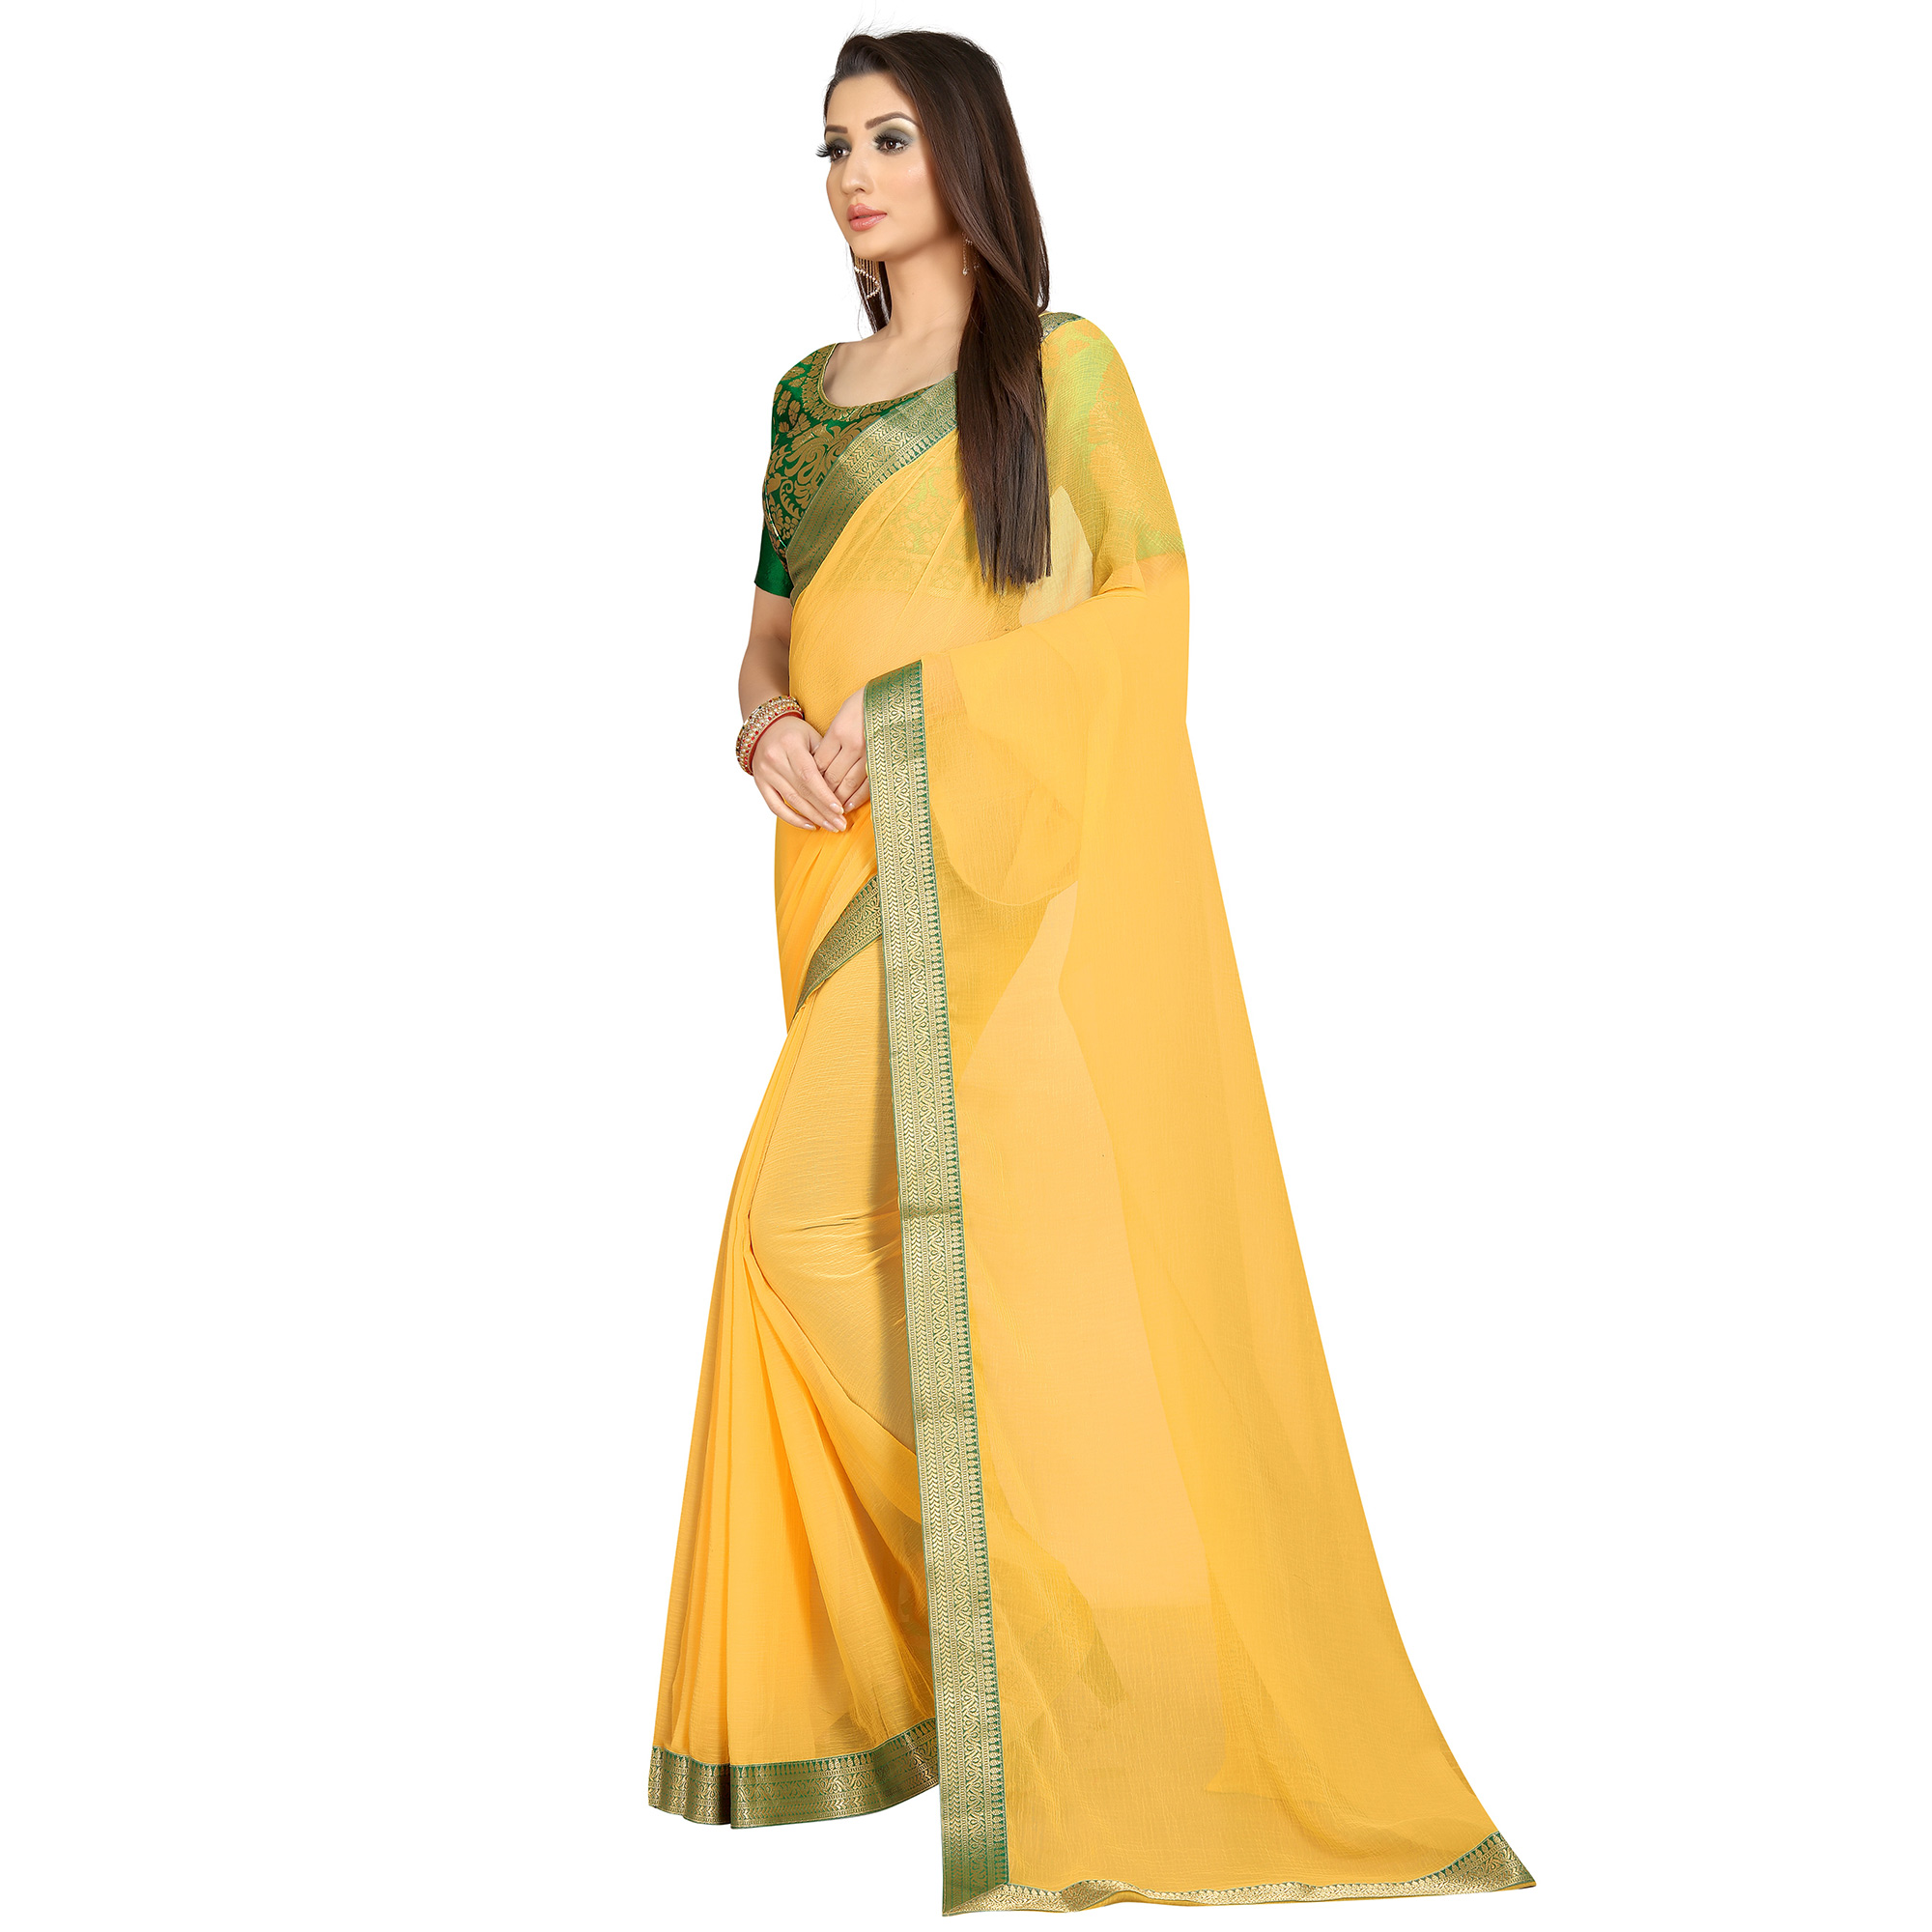 Gleaming Yellow-Green Colored Partywear Chiffon Saree